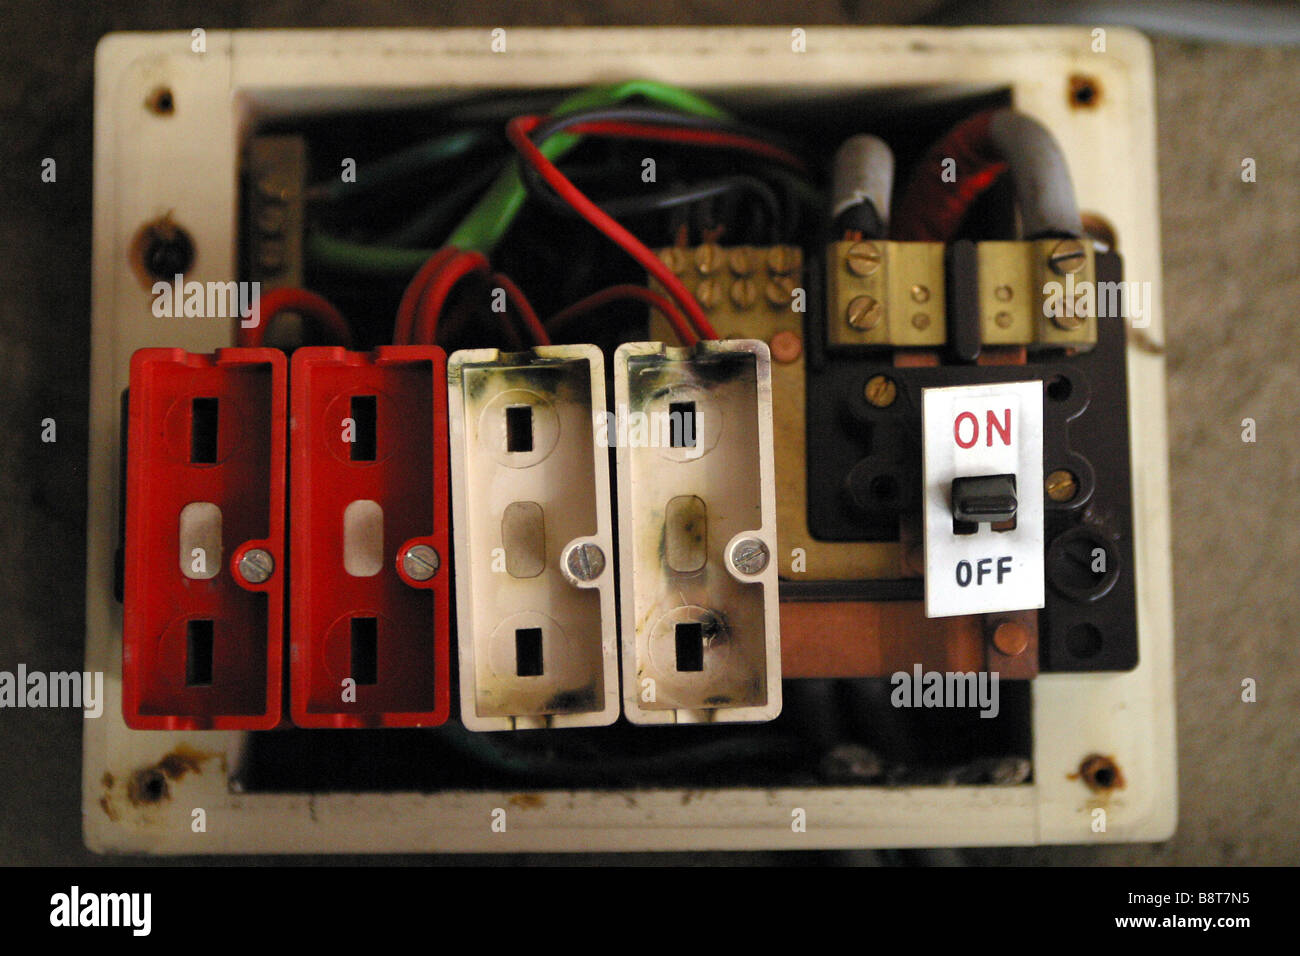 hight resolution of broken fuse in fuse box house wiring diagram world broken fuse box